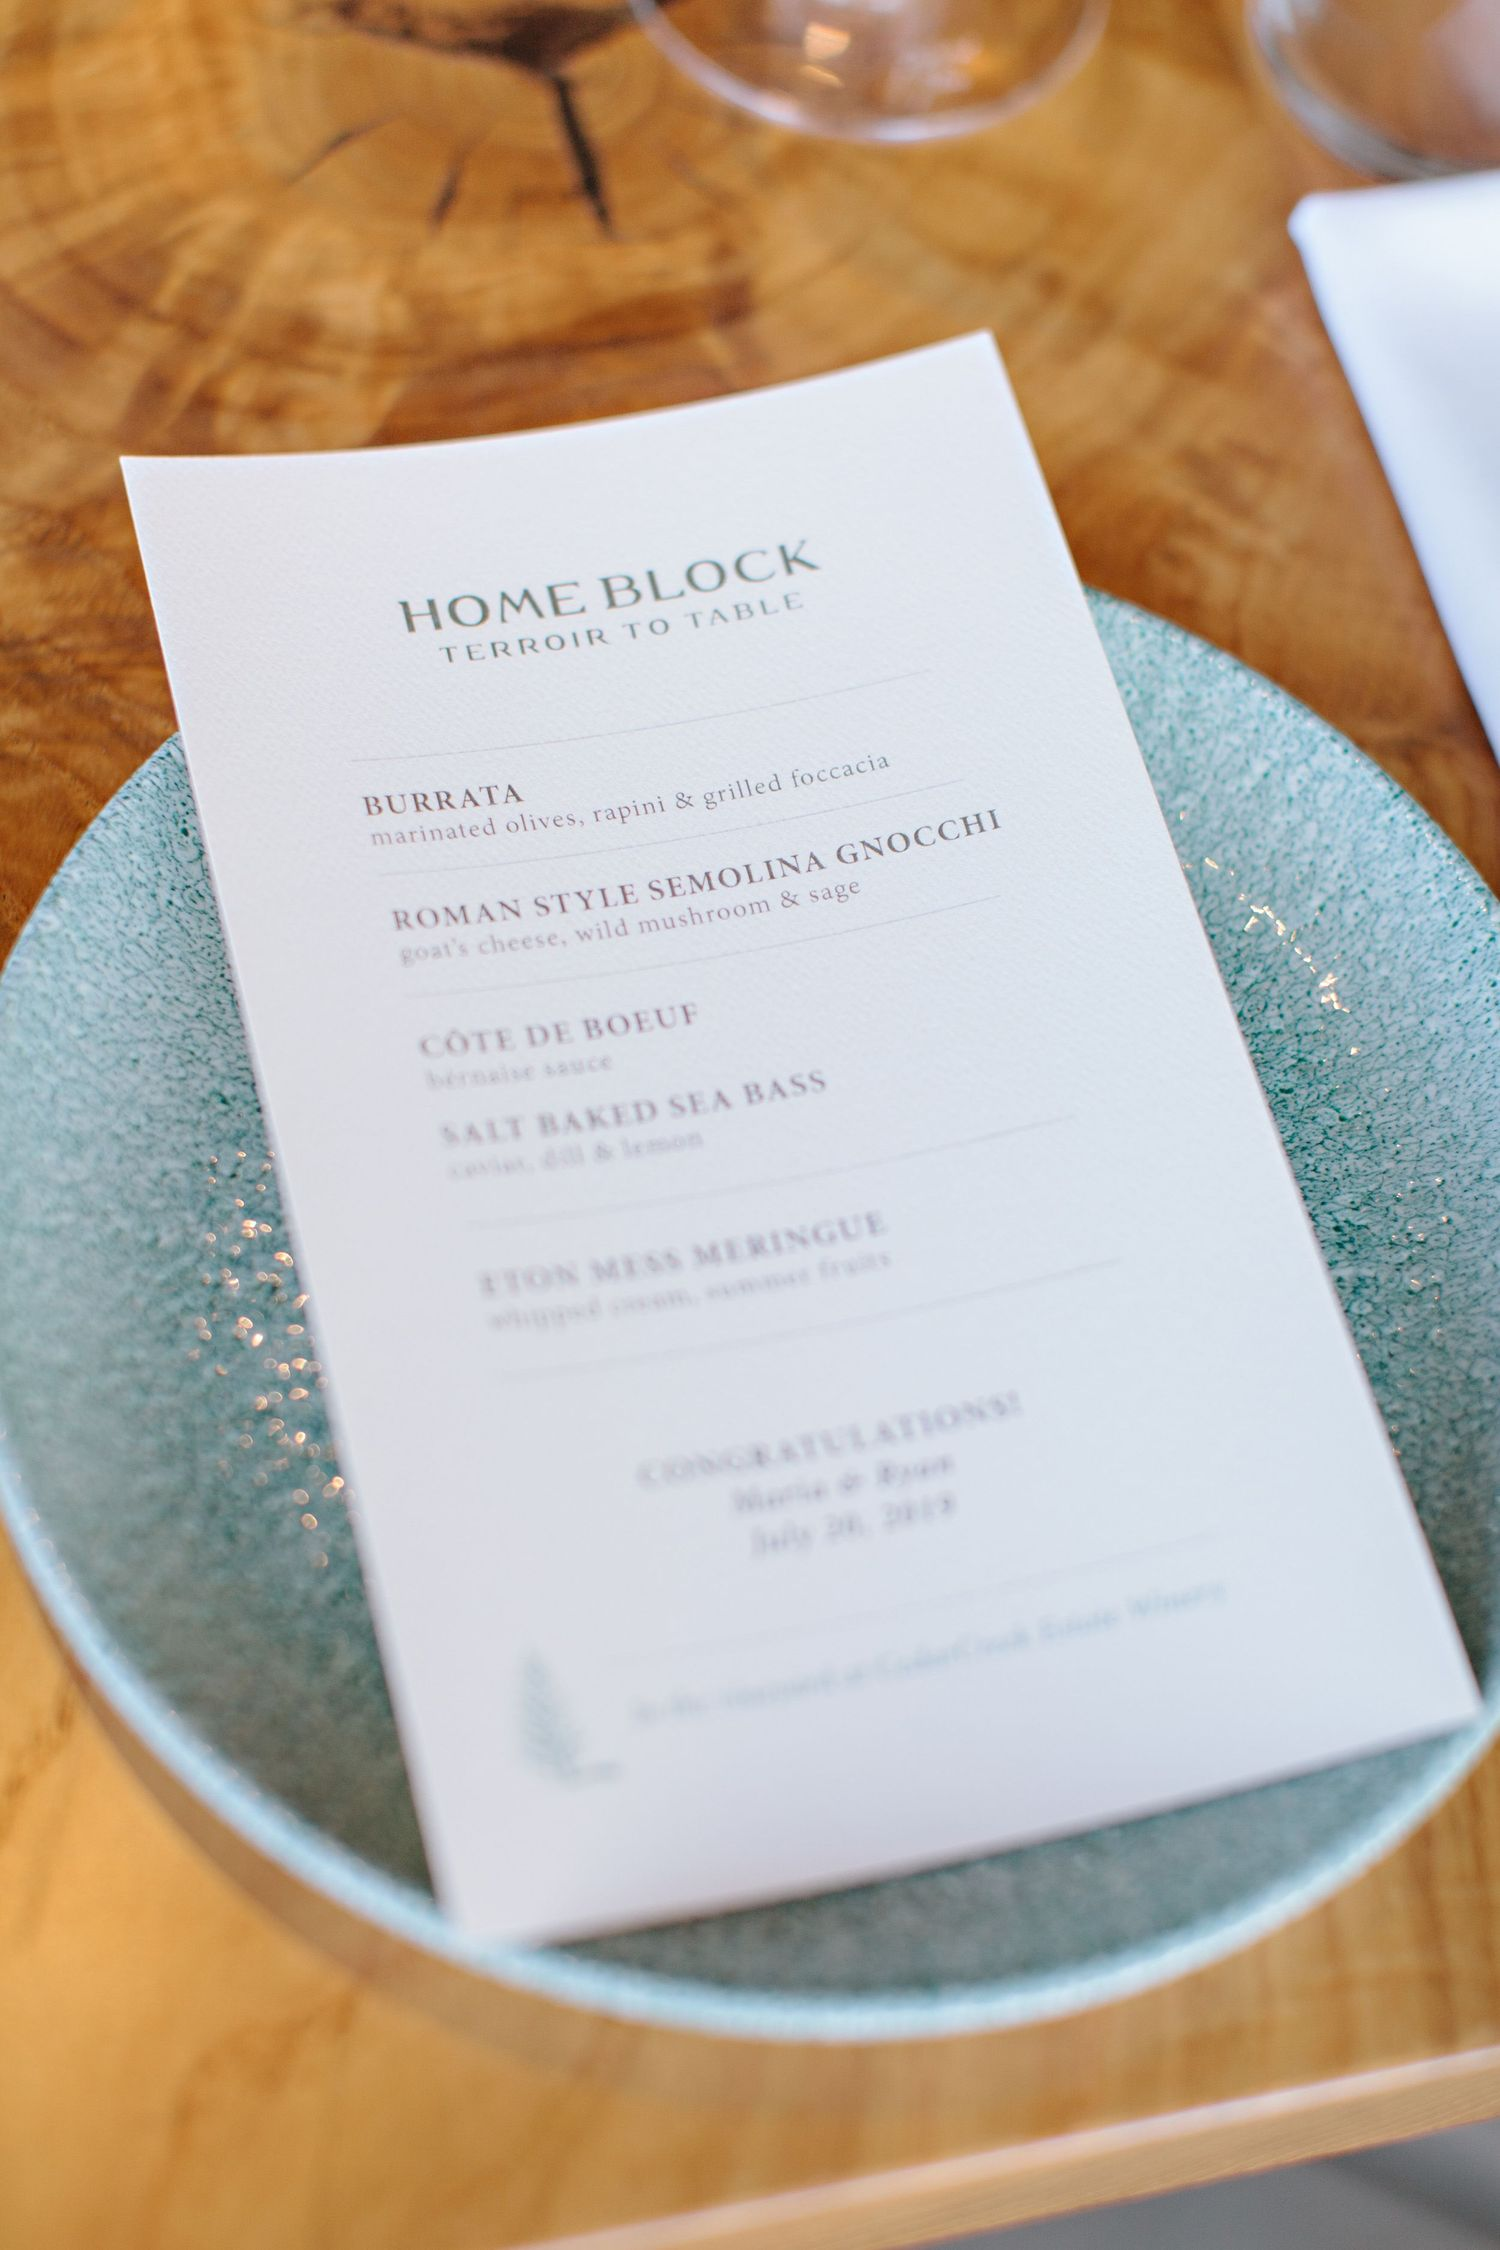 Home Block wedding menu